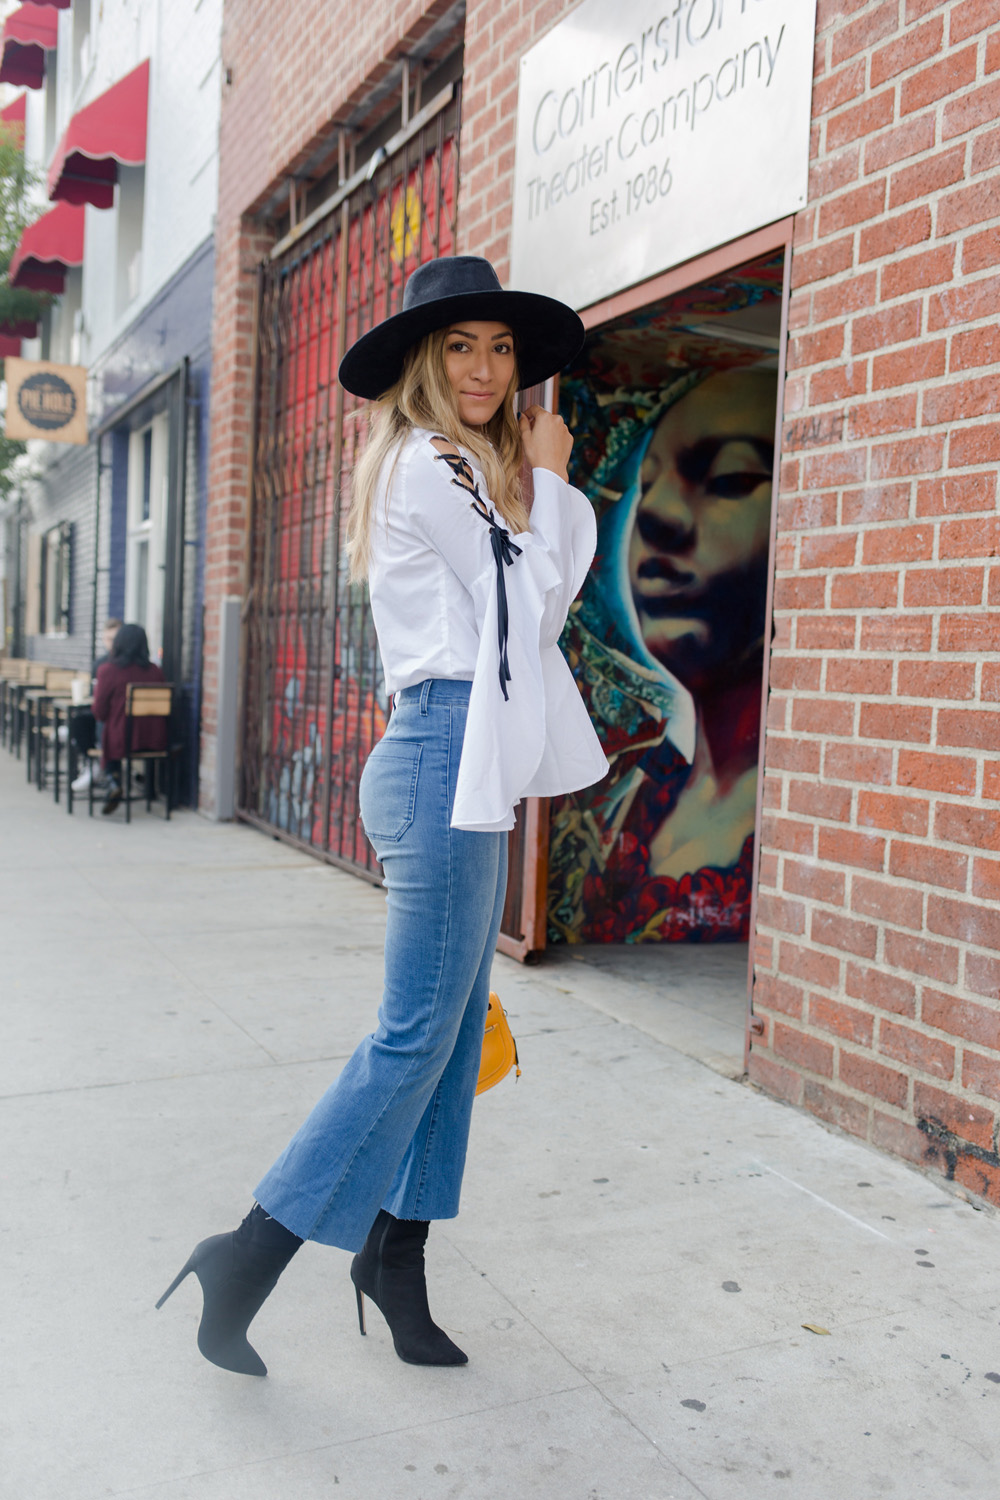 dietch pr, stefanie m mariee, alpha omega, melrodstyle, blogger, street style, beverly hills, la blogger, whittier blogger, latina blogger, hispanic blogger, mexican blogger, outfit, ootd, who what wear,